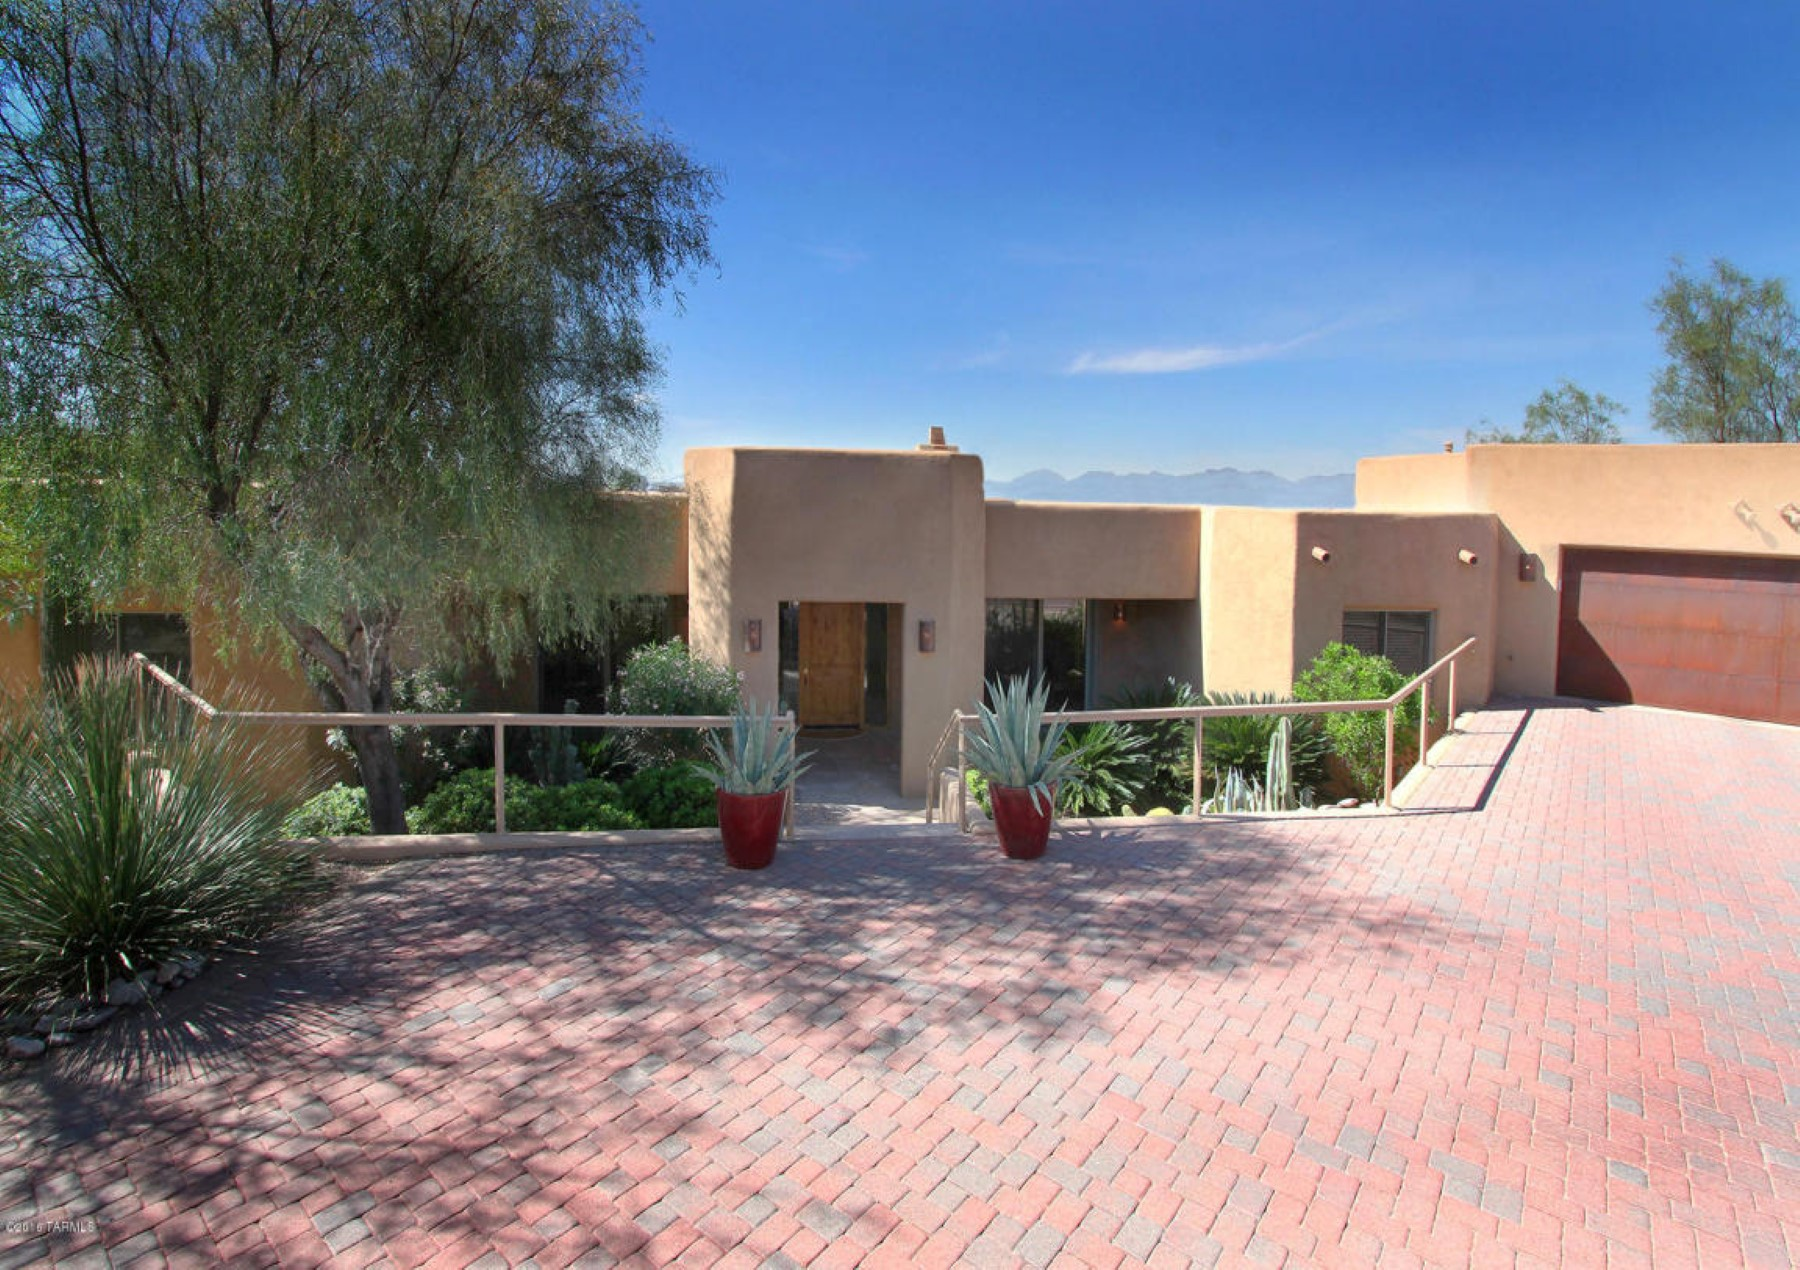 Moradia para Venda às Fully furnished contemporary home 1608 E Desert Garden Drive Tucson, Arizona, 85718 Estados Unidos